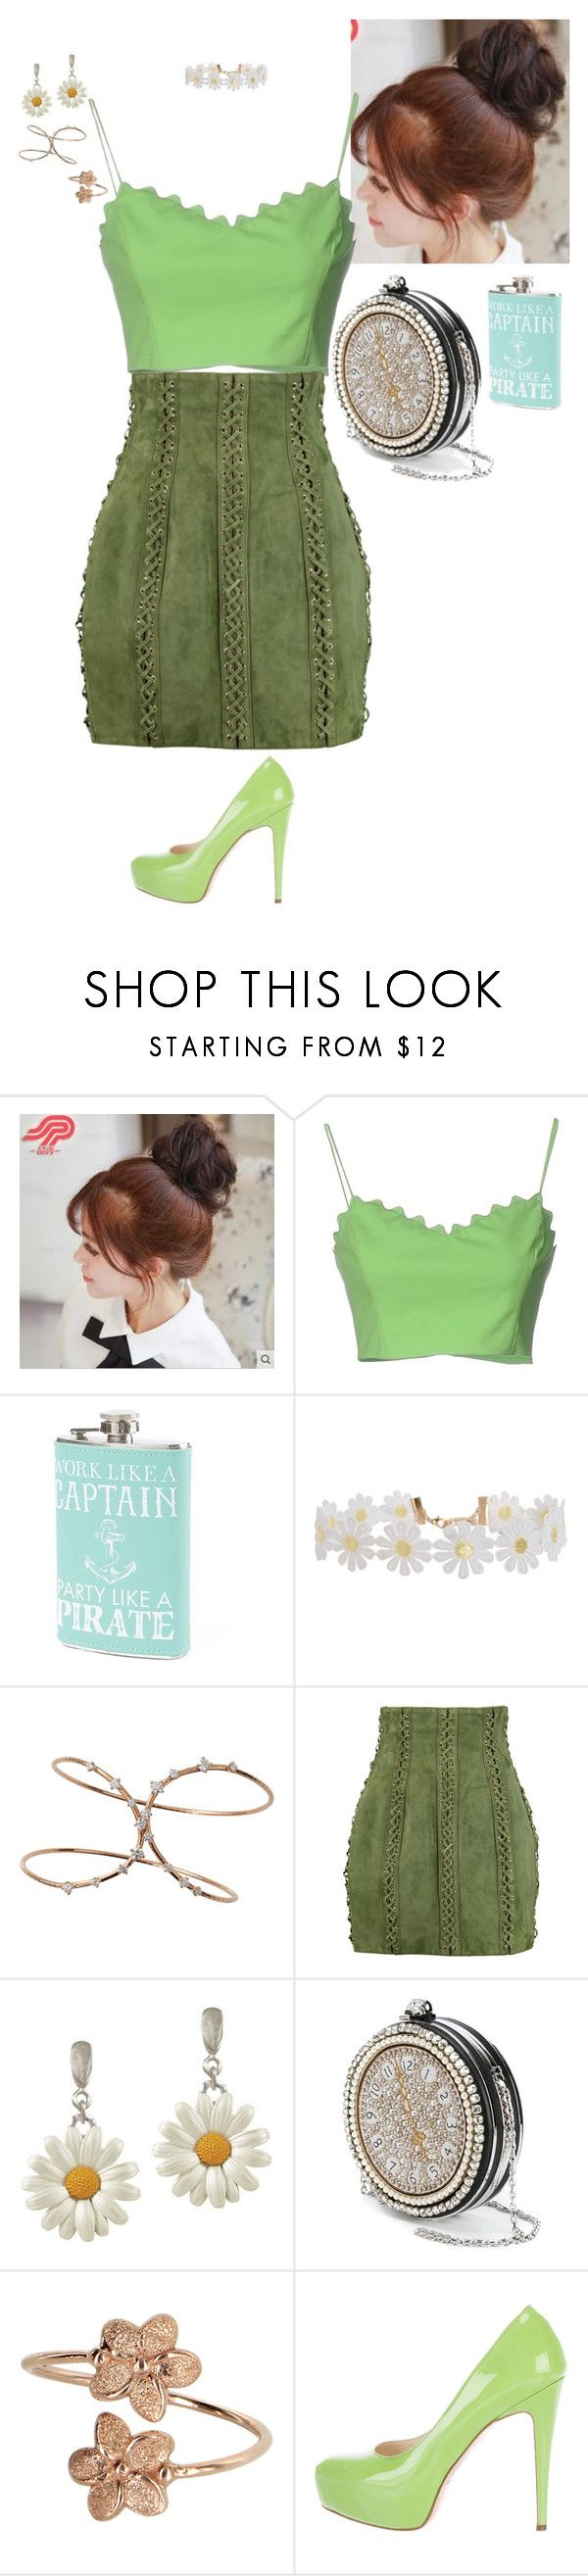 """Fairy Dust - Cocktails by Cody"" by stinze on Polyvore featuring Pin Show, Moschino Cheap & Chic, Humble Chic, Mattia Cielo, Balmain, Alexander McQueen and Brian Atwood"